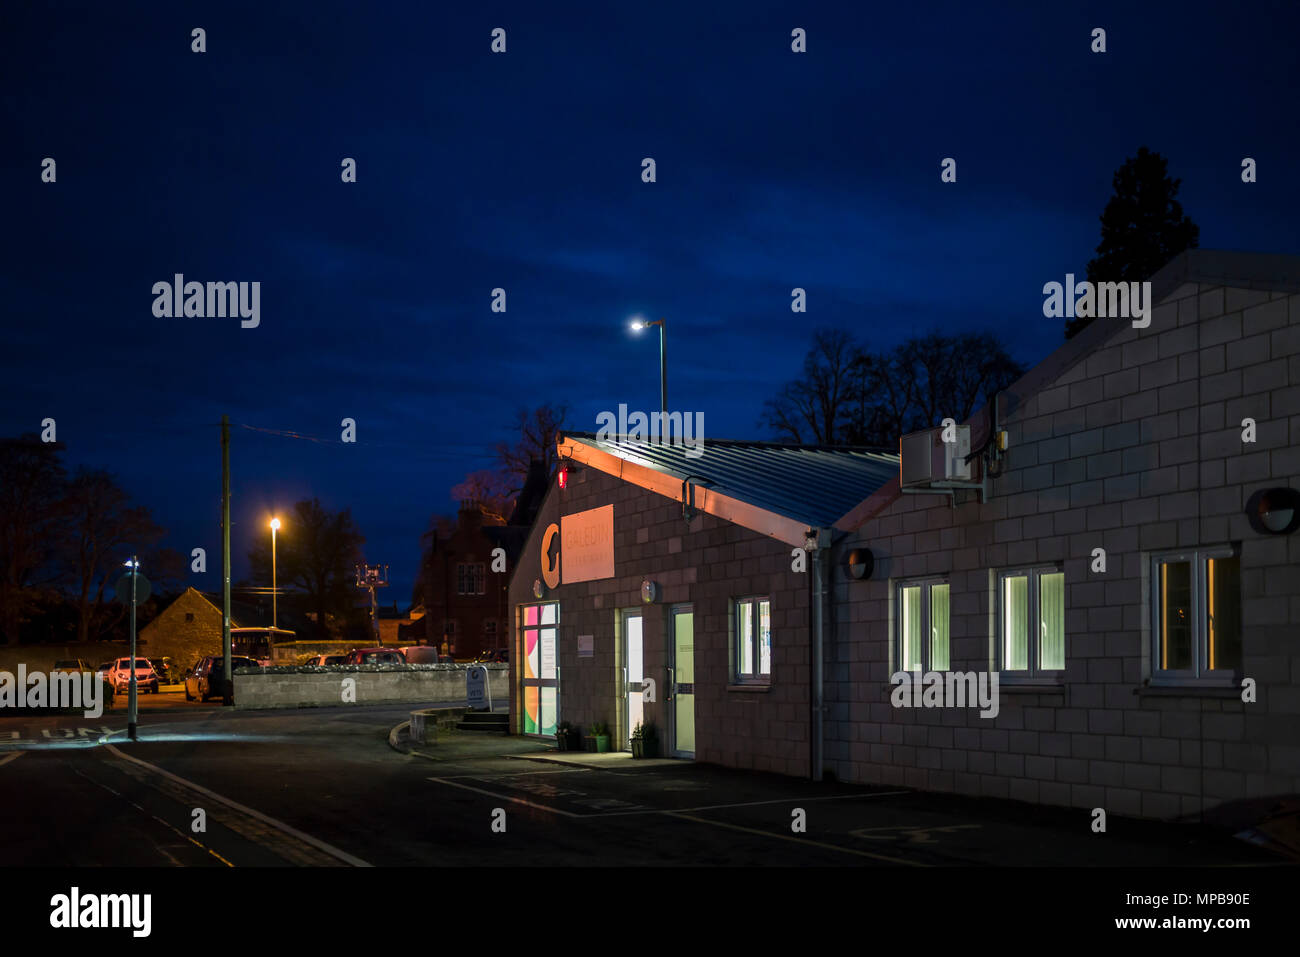 A vets' practice at night in Kelso, Scotland. Galedin vets group, in a converted former printing works. - Stock Image